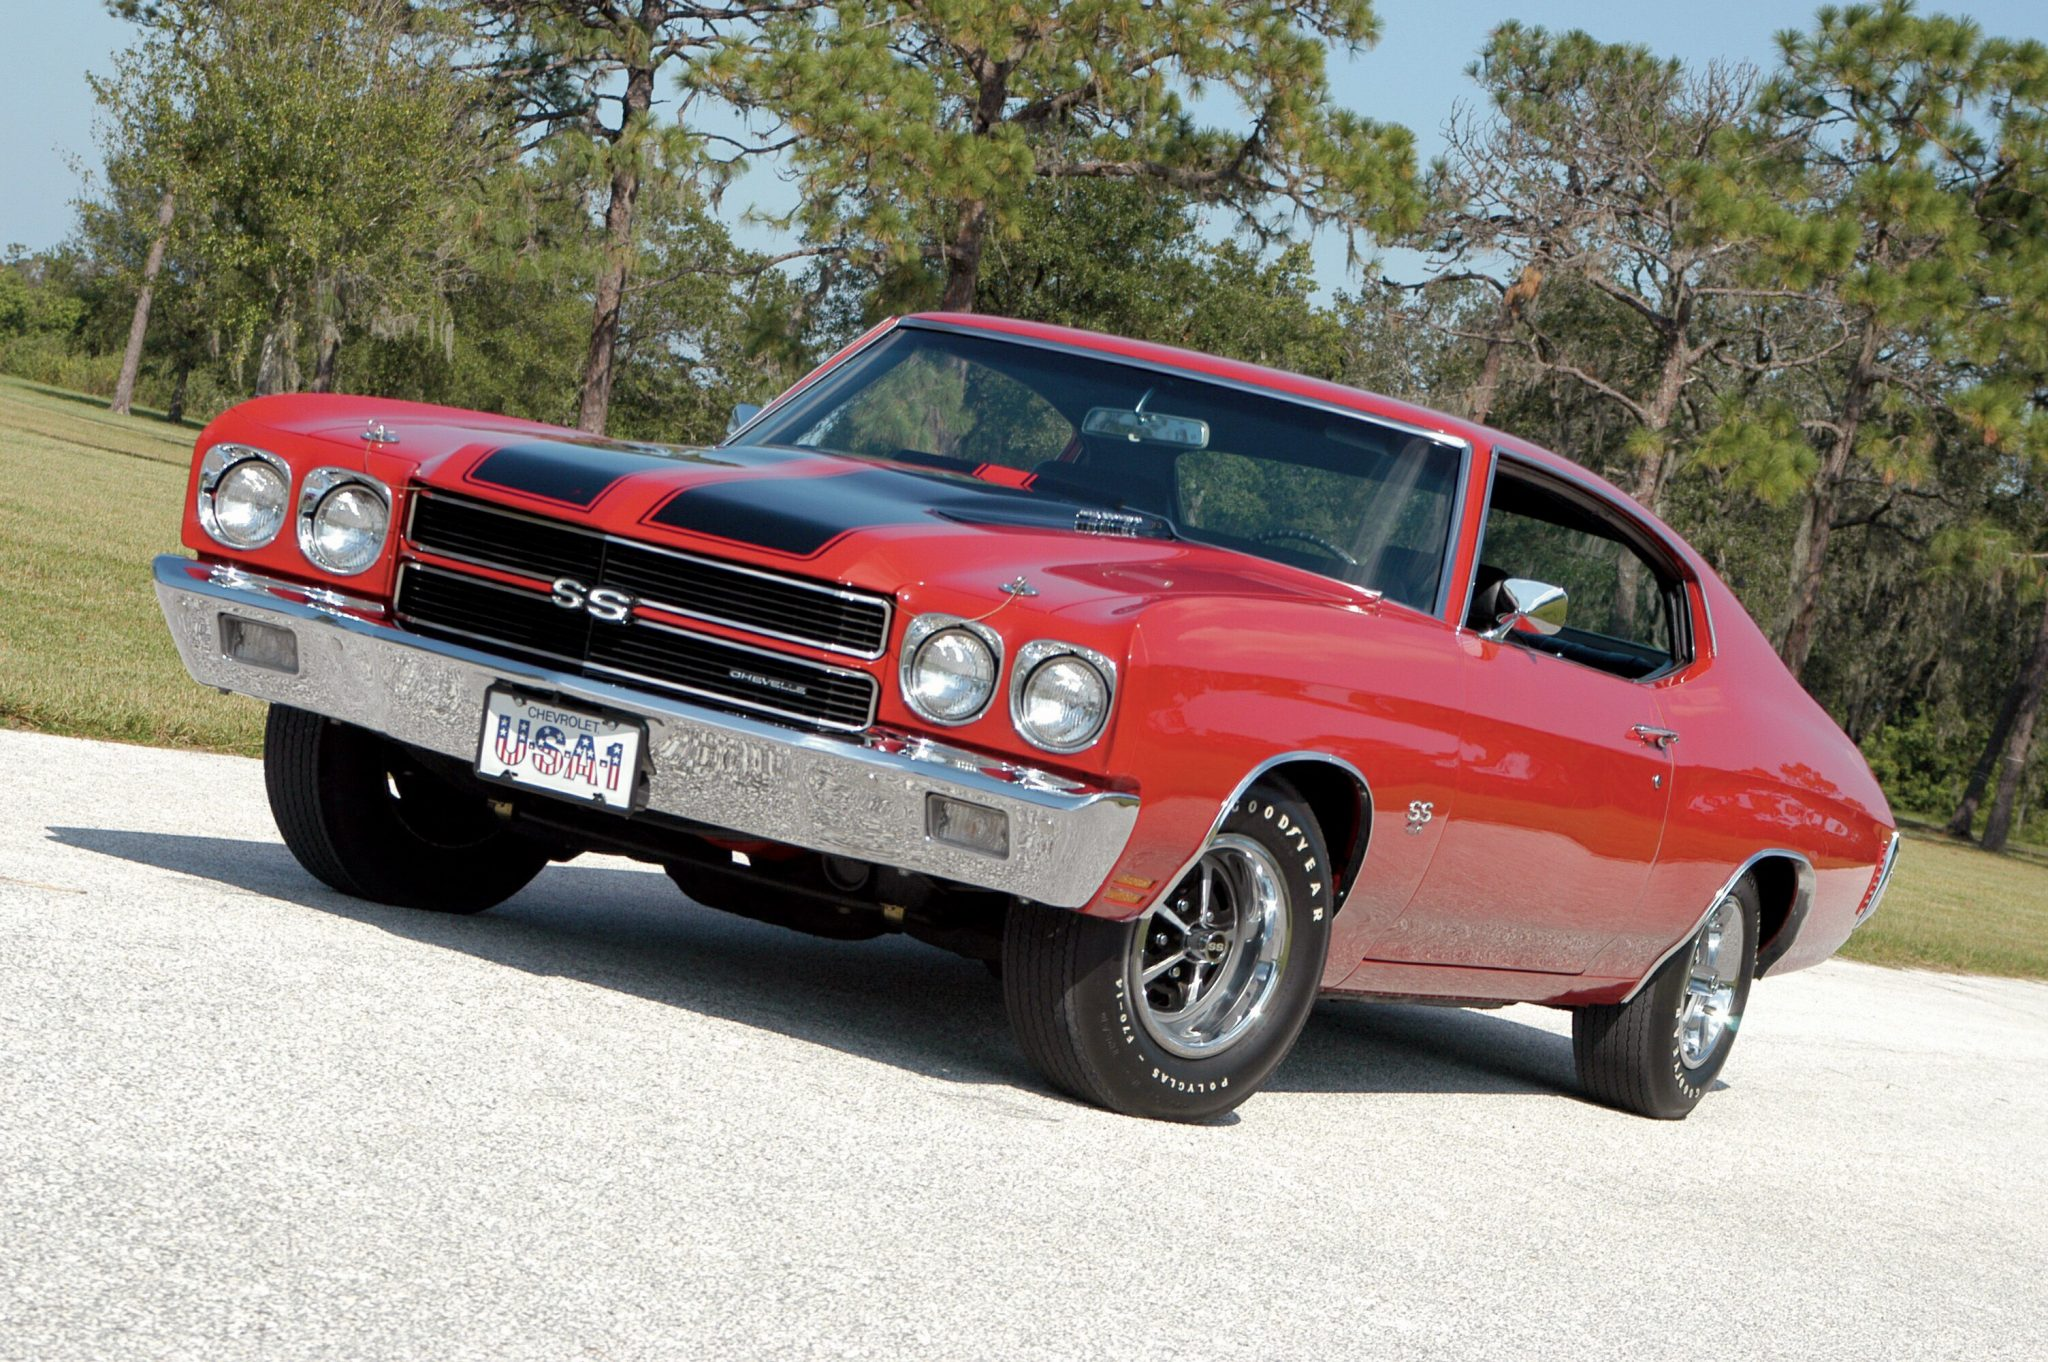 The Ultimate Muscle Car – The 1970 LS6 Chevelle Was America's King